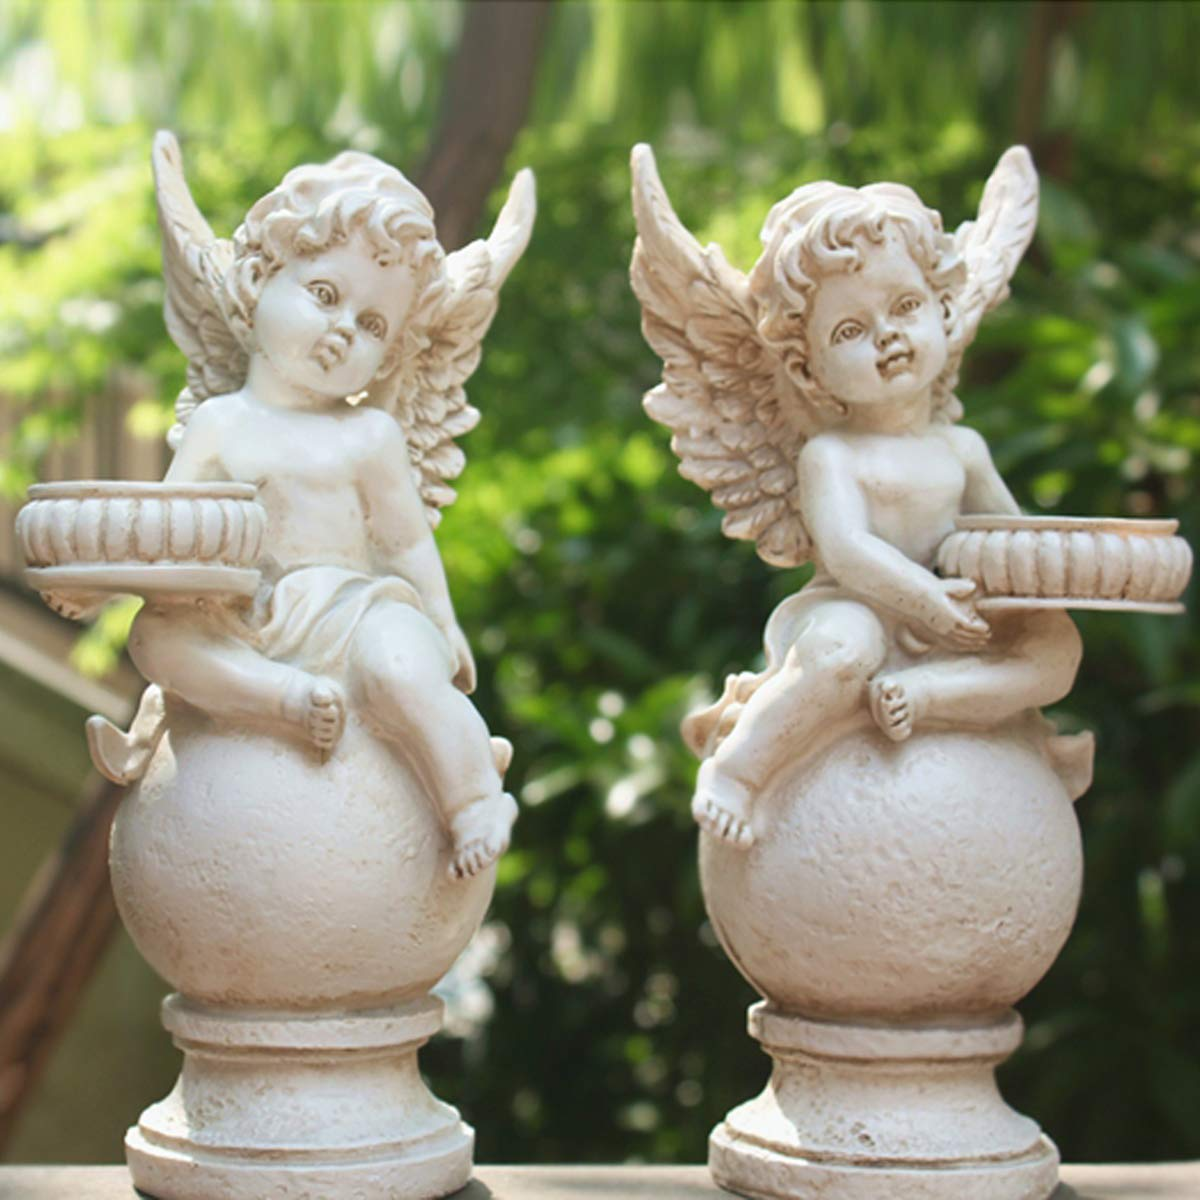 Owmell Set Of 2 Cherubs Angels Statue Candle Holder 9 5 Inch Weathered Antique Resin Angels Garden Statue Figurine For Indoor Outdoor Patio Garden Decorations Buy Online In India At Desertcart In Productid 154357786